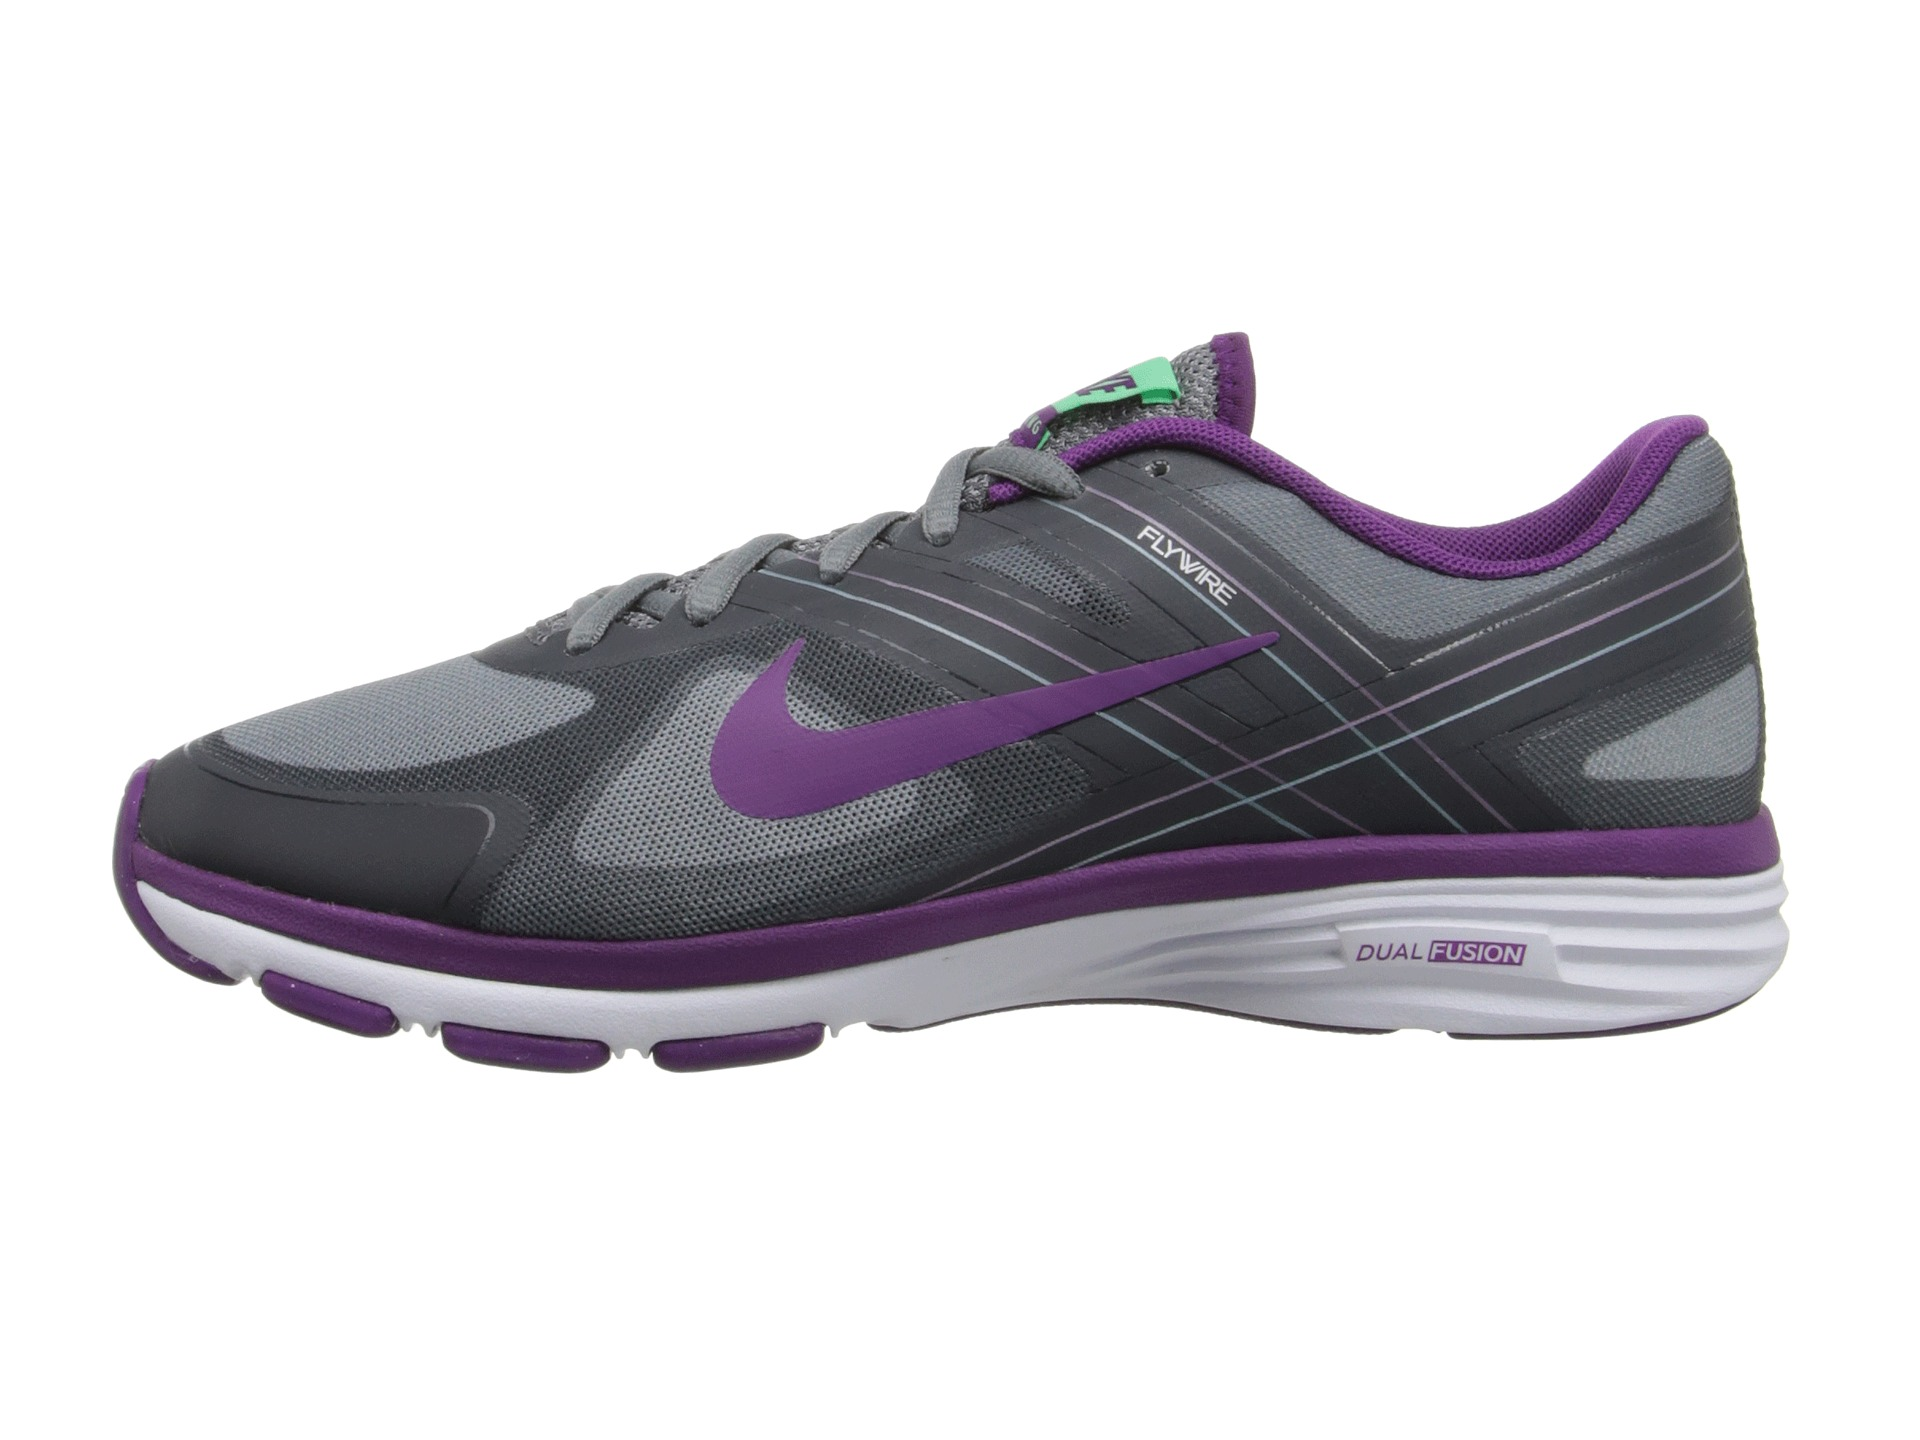 Nike Dual Fusion TR 3 Lightweight Cross Training Shoe - Womens | DSW